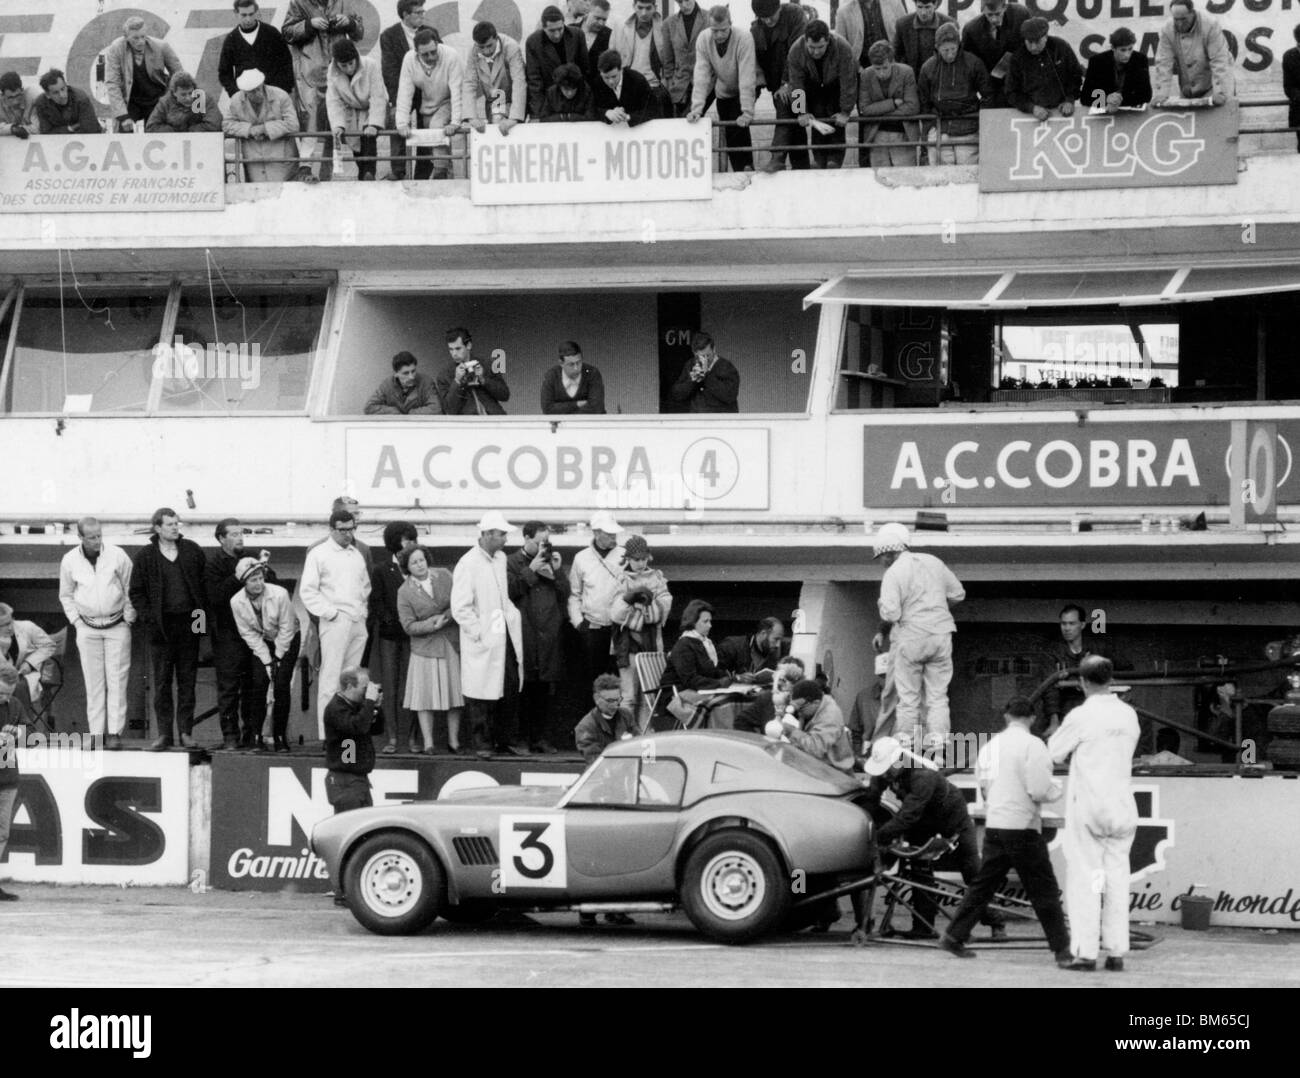 AC Cobra 1963 Le Mans. Bolton and Sanderson in the pits - Stock Image